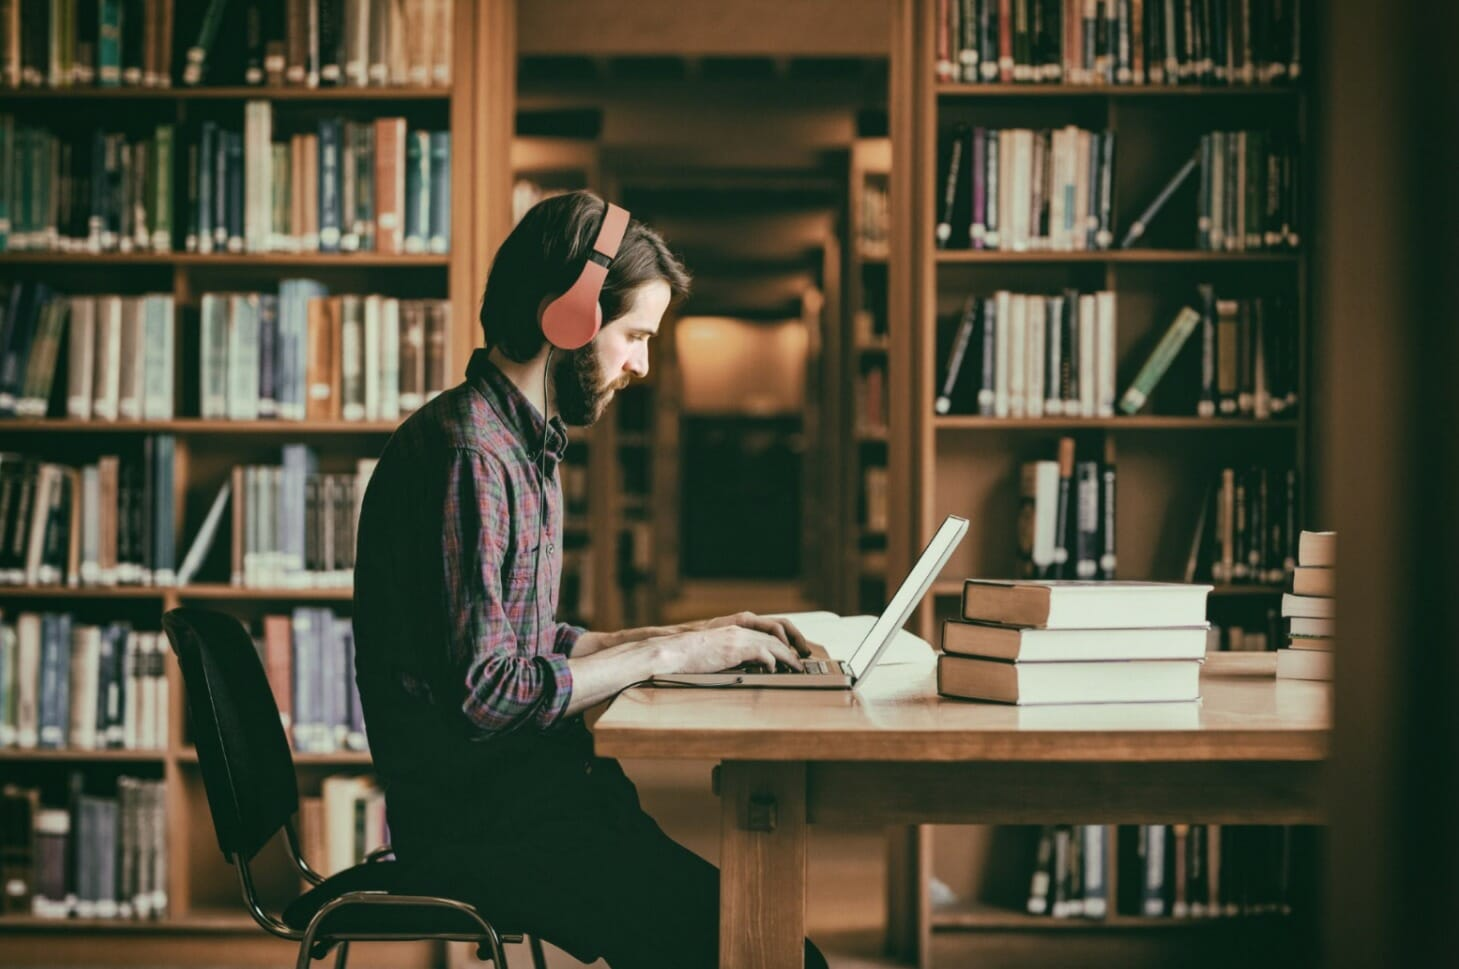 10 Poor Study Habits - Listening to Music